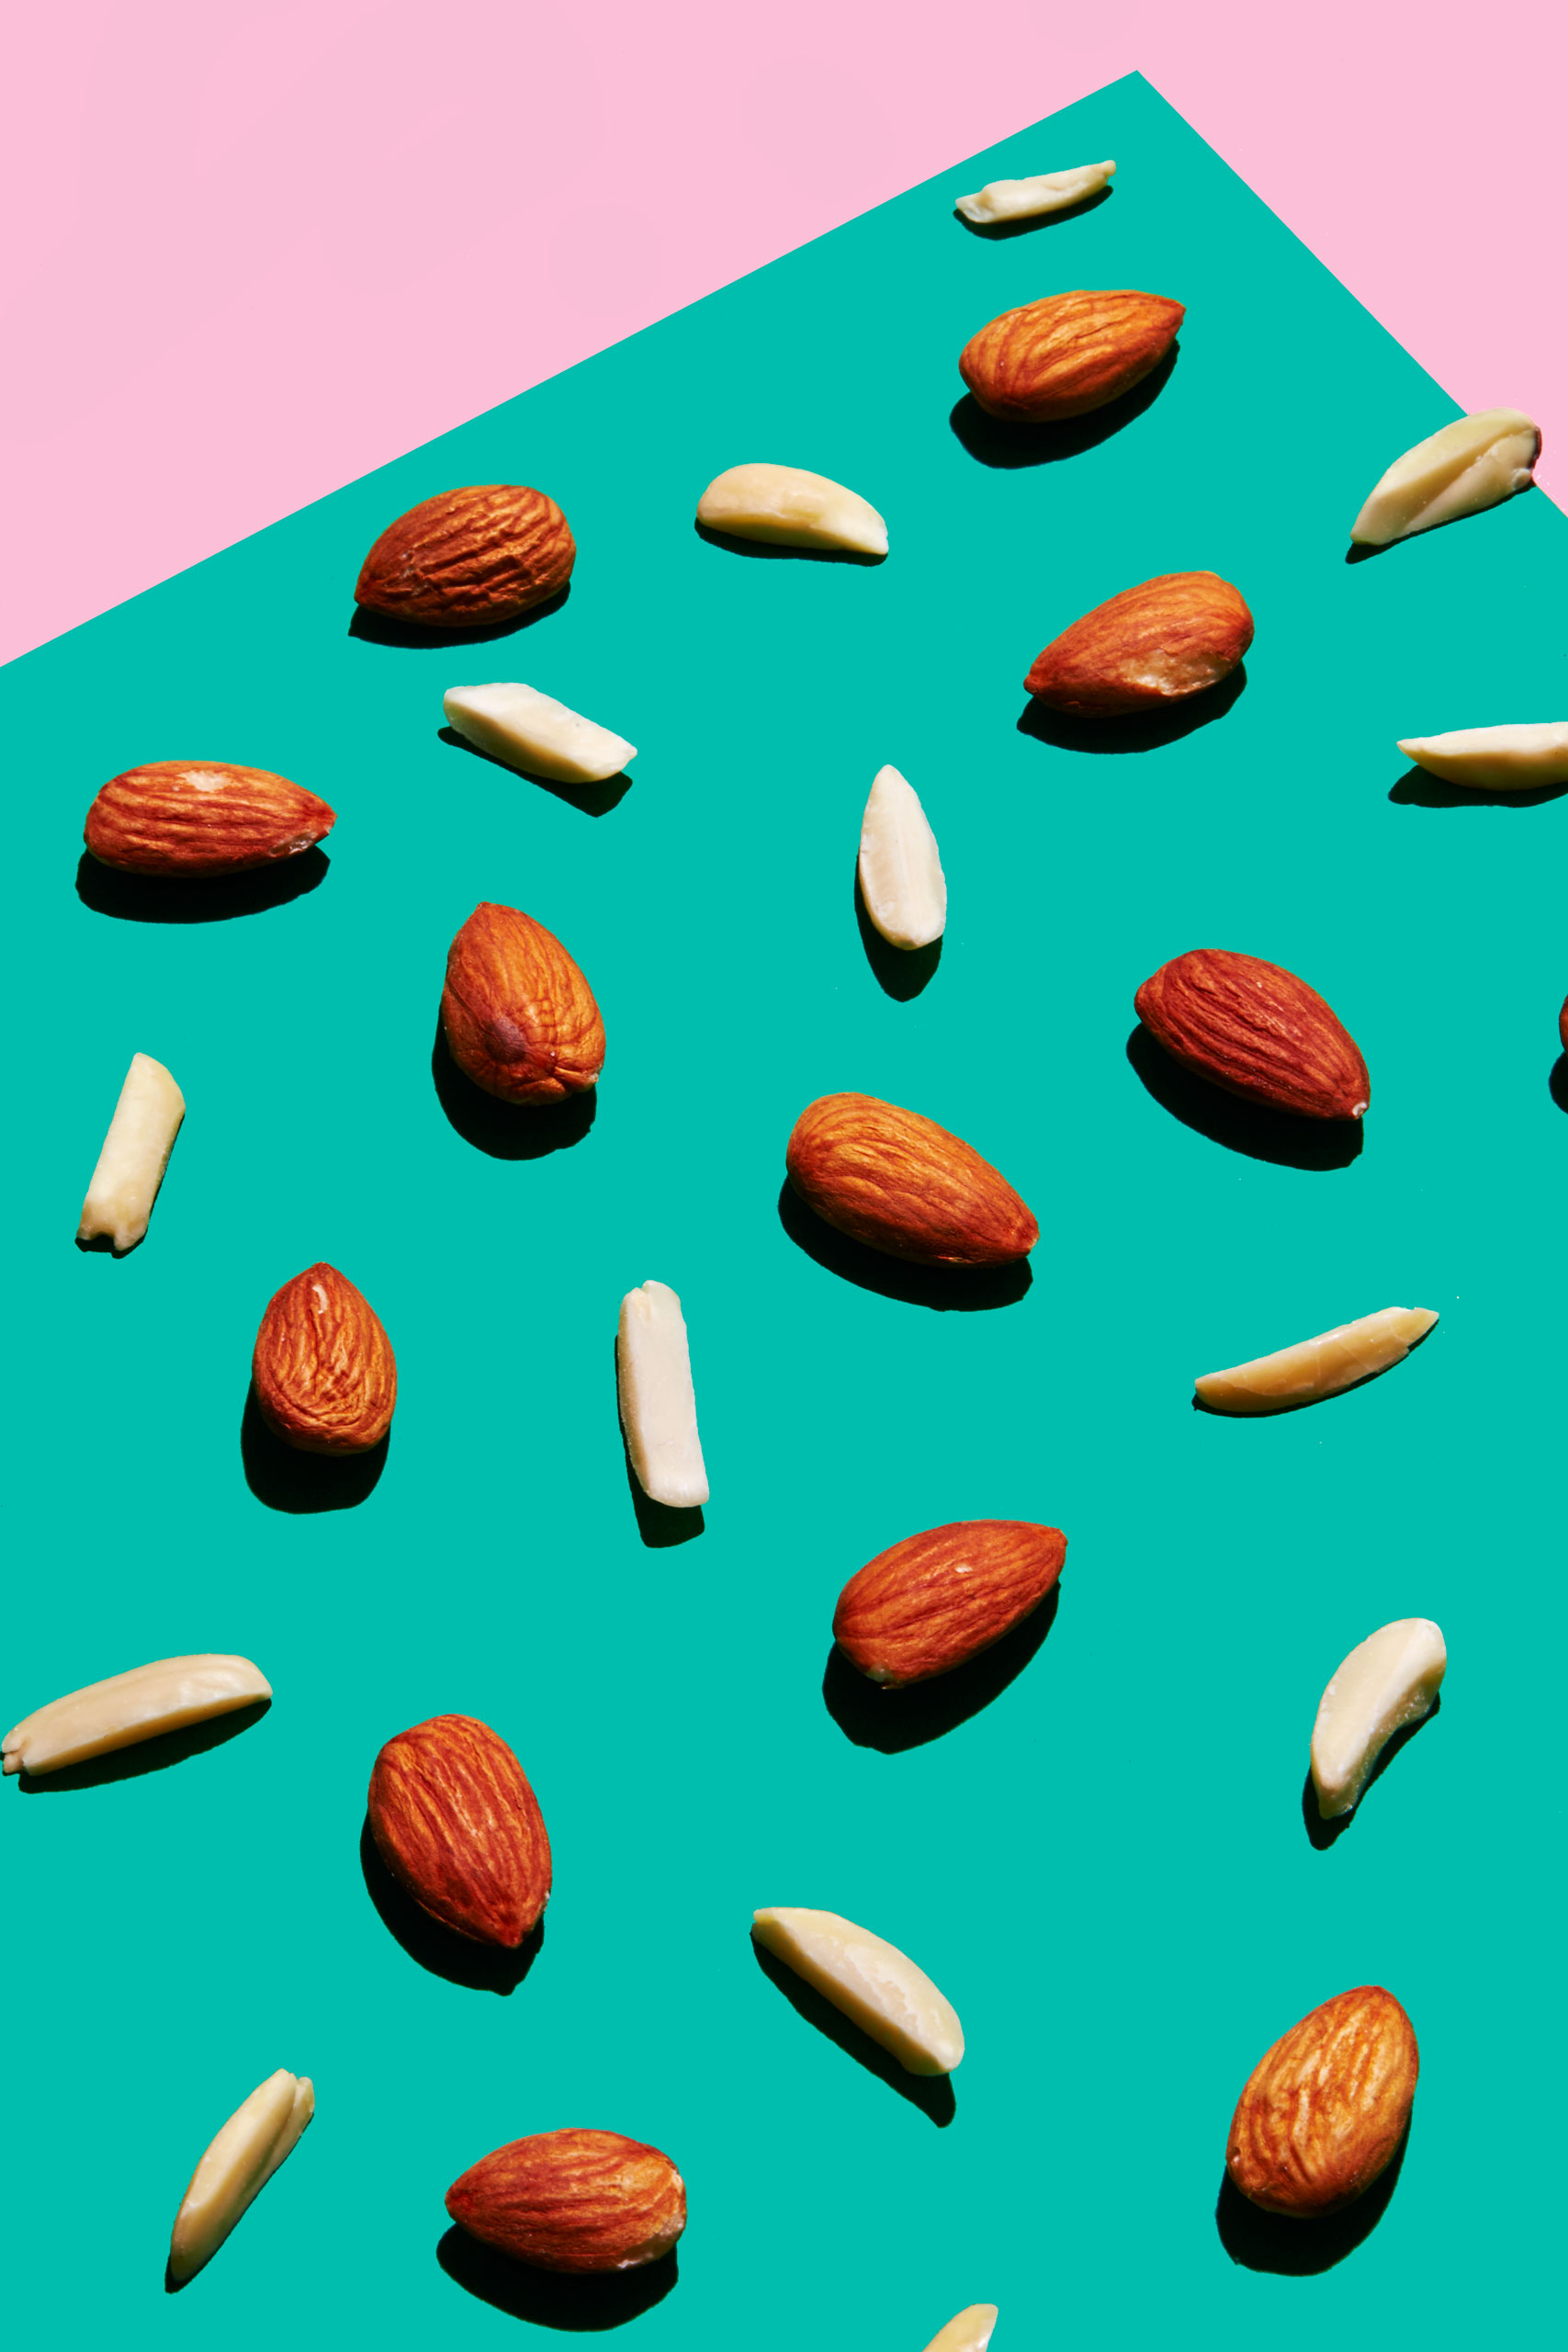 healthiest foods, health food, diet, nutrition, time.com stock, almonds, nuts